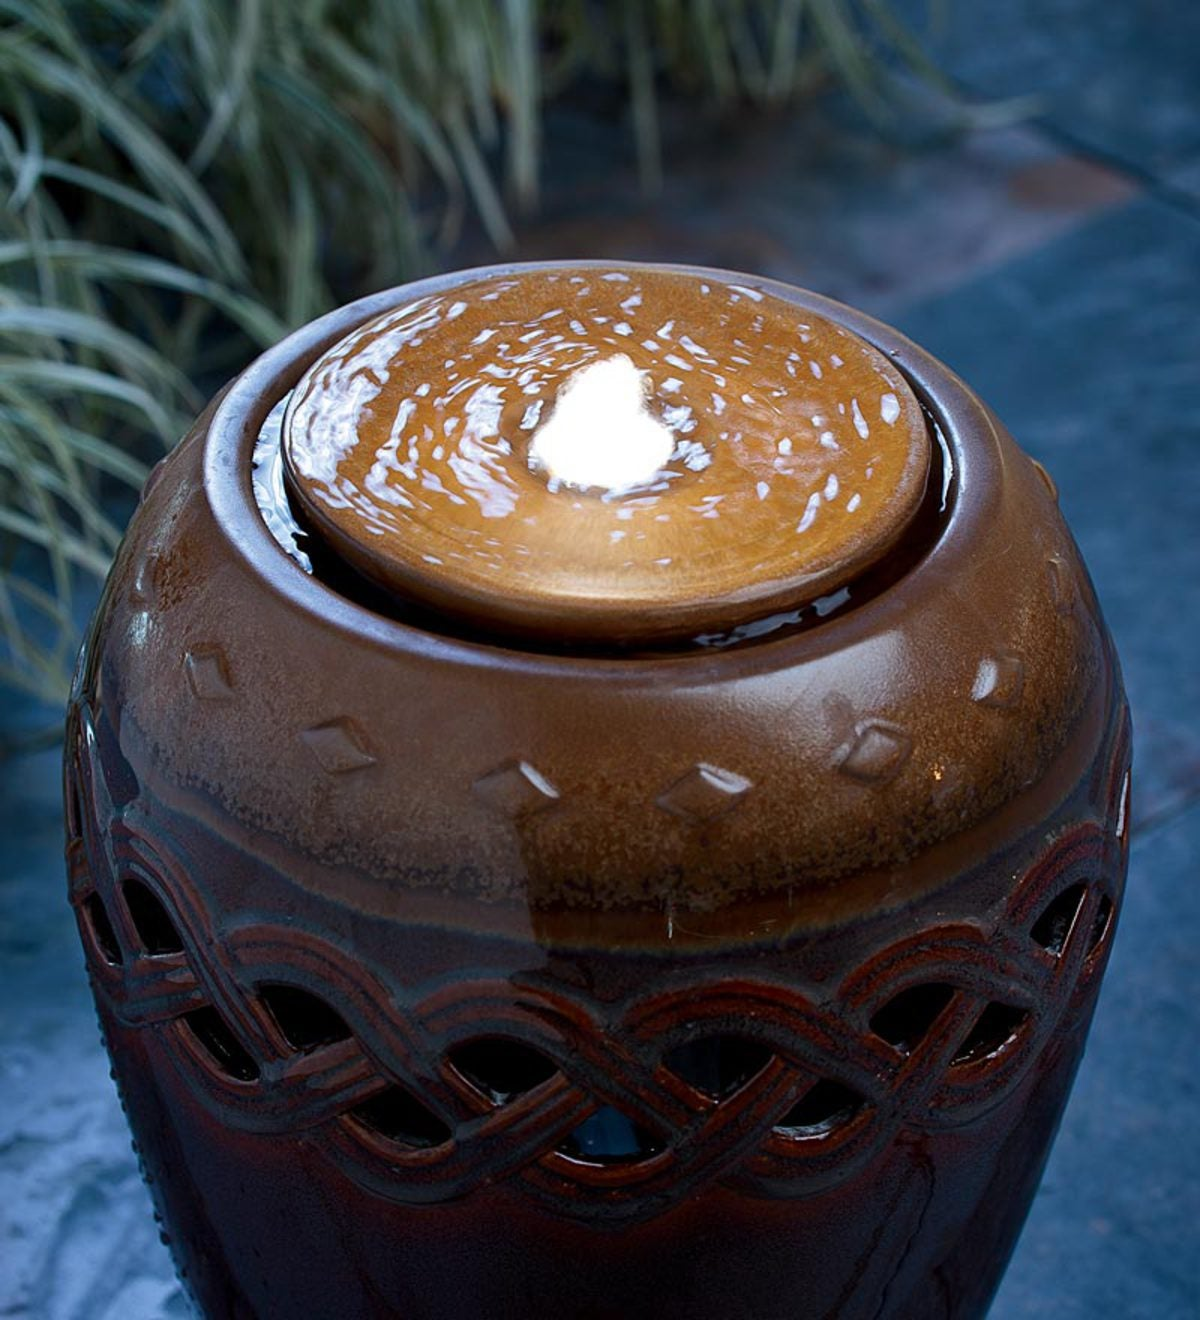 Lighted Glazed Ceramic Urn Fountain